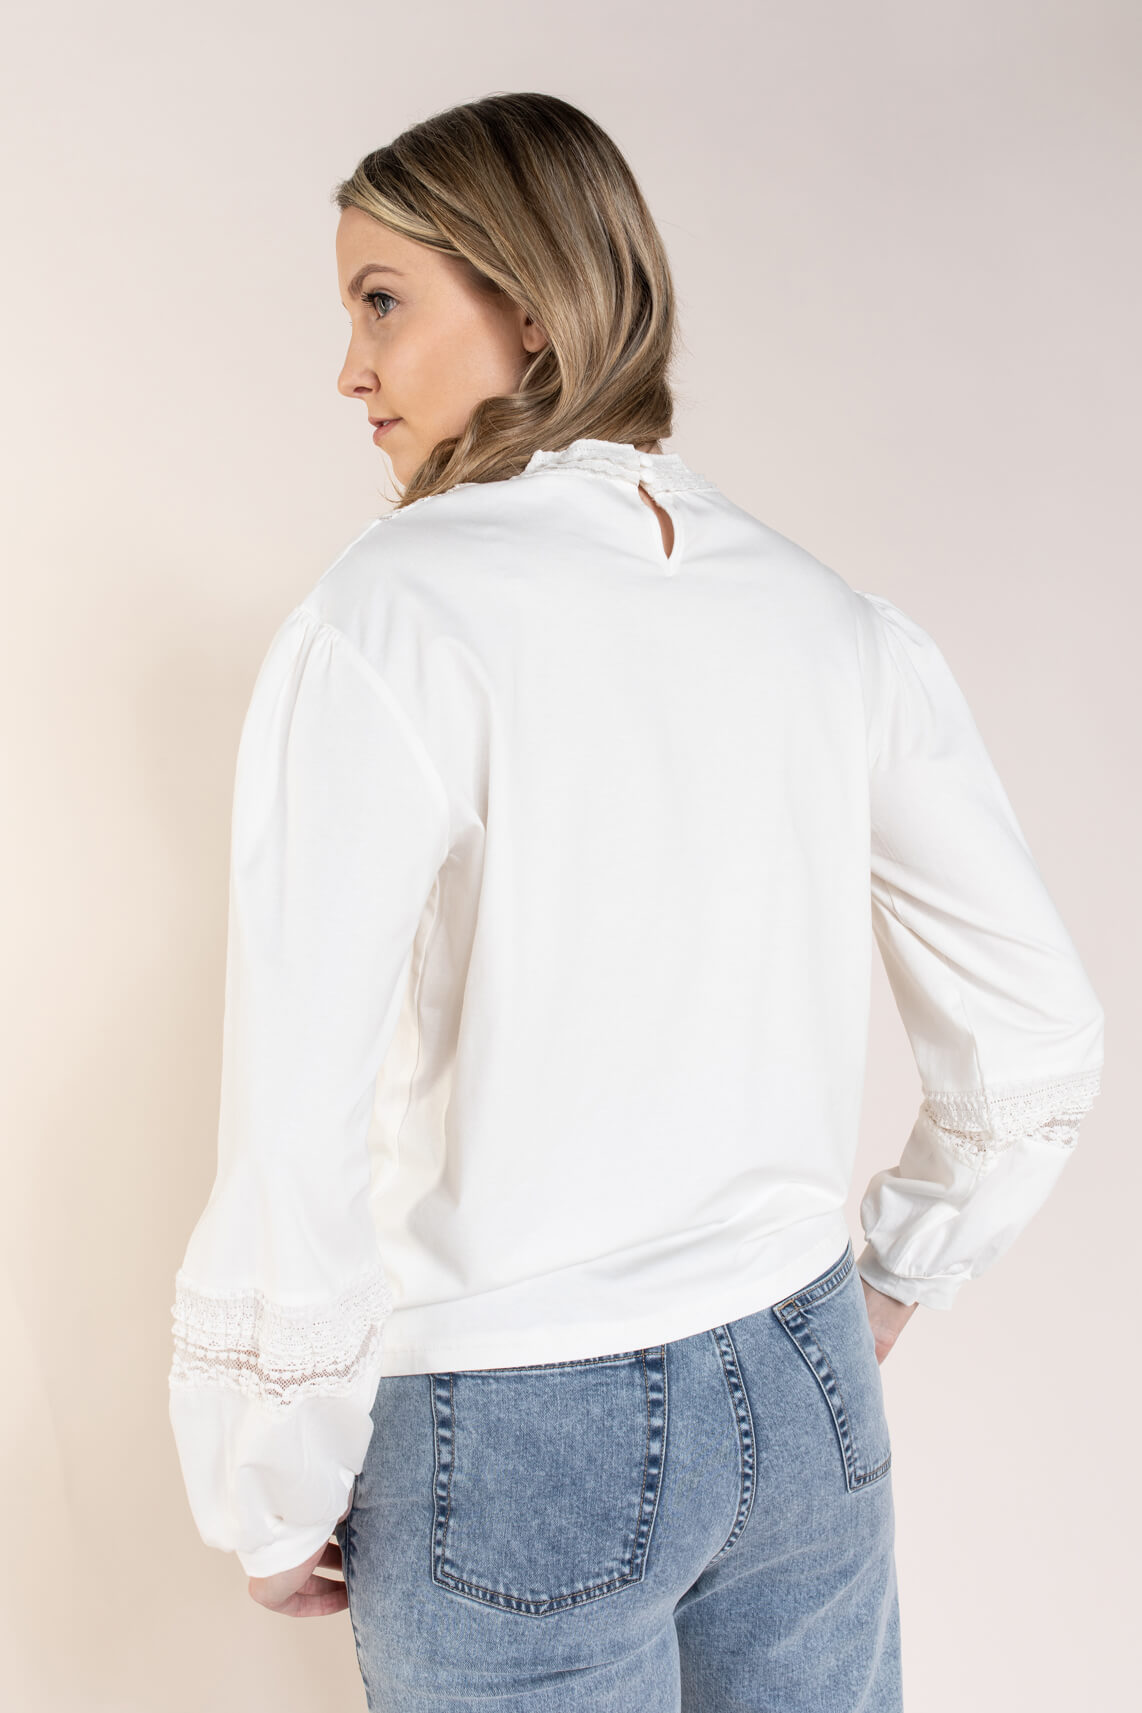 Anna Dames Blouse met kant Wit